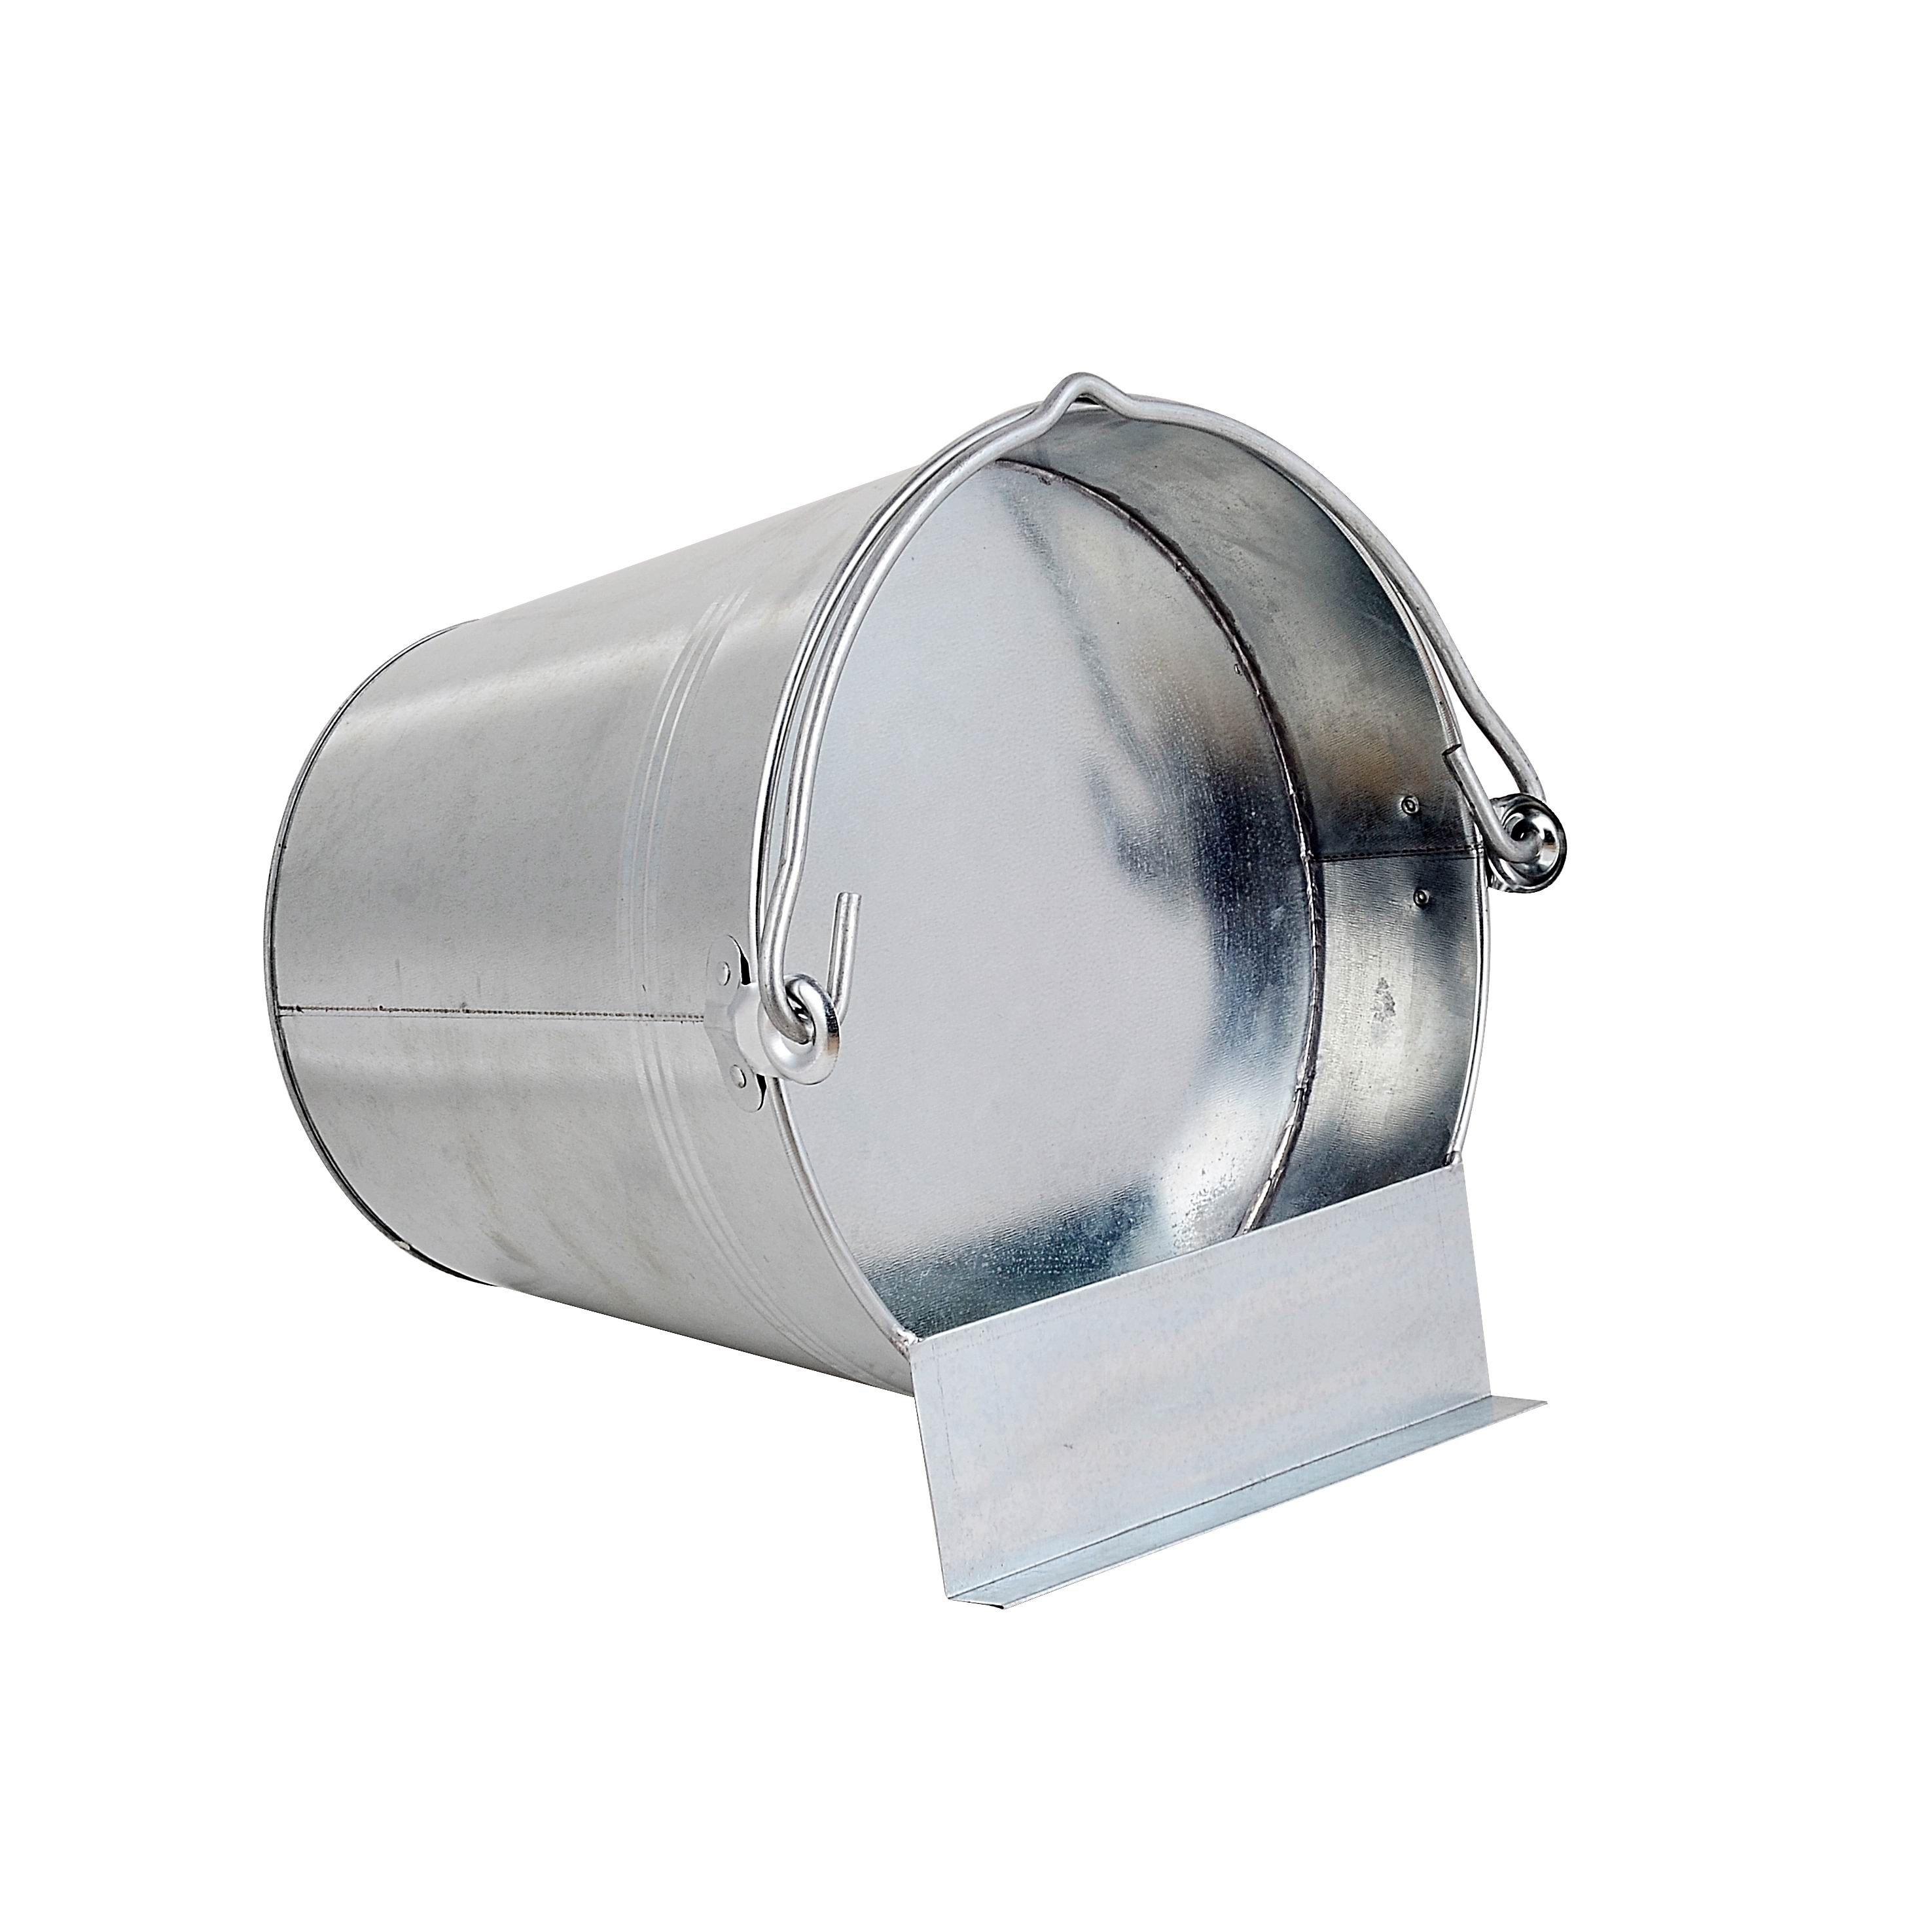 7L Galvanized Metal Chicken Bucket/poultry Drinker